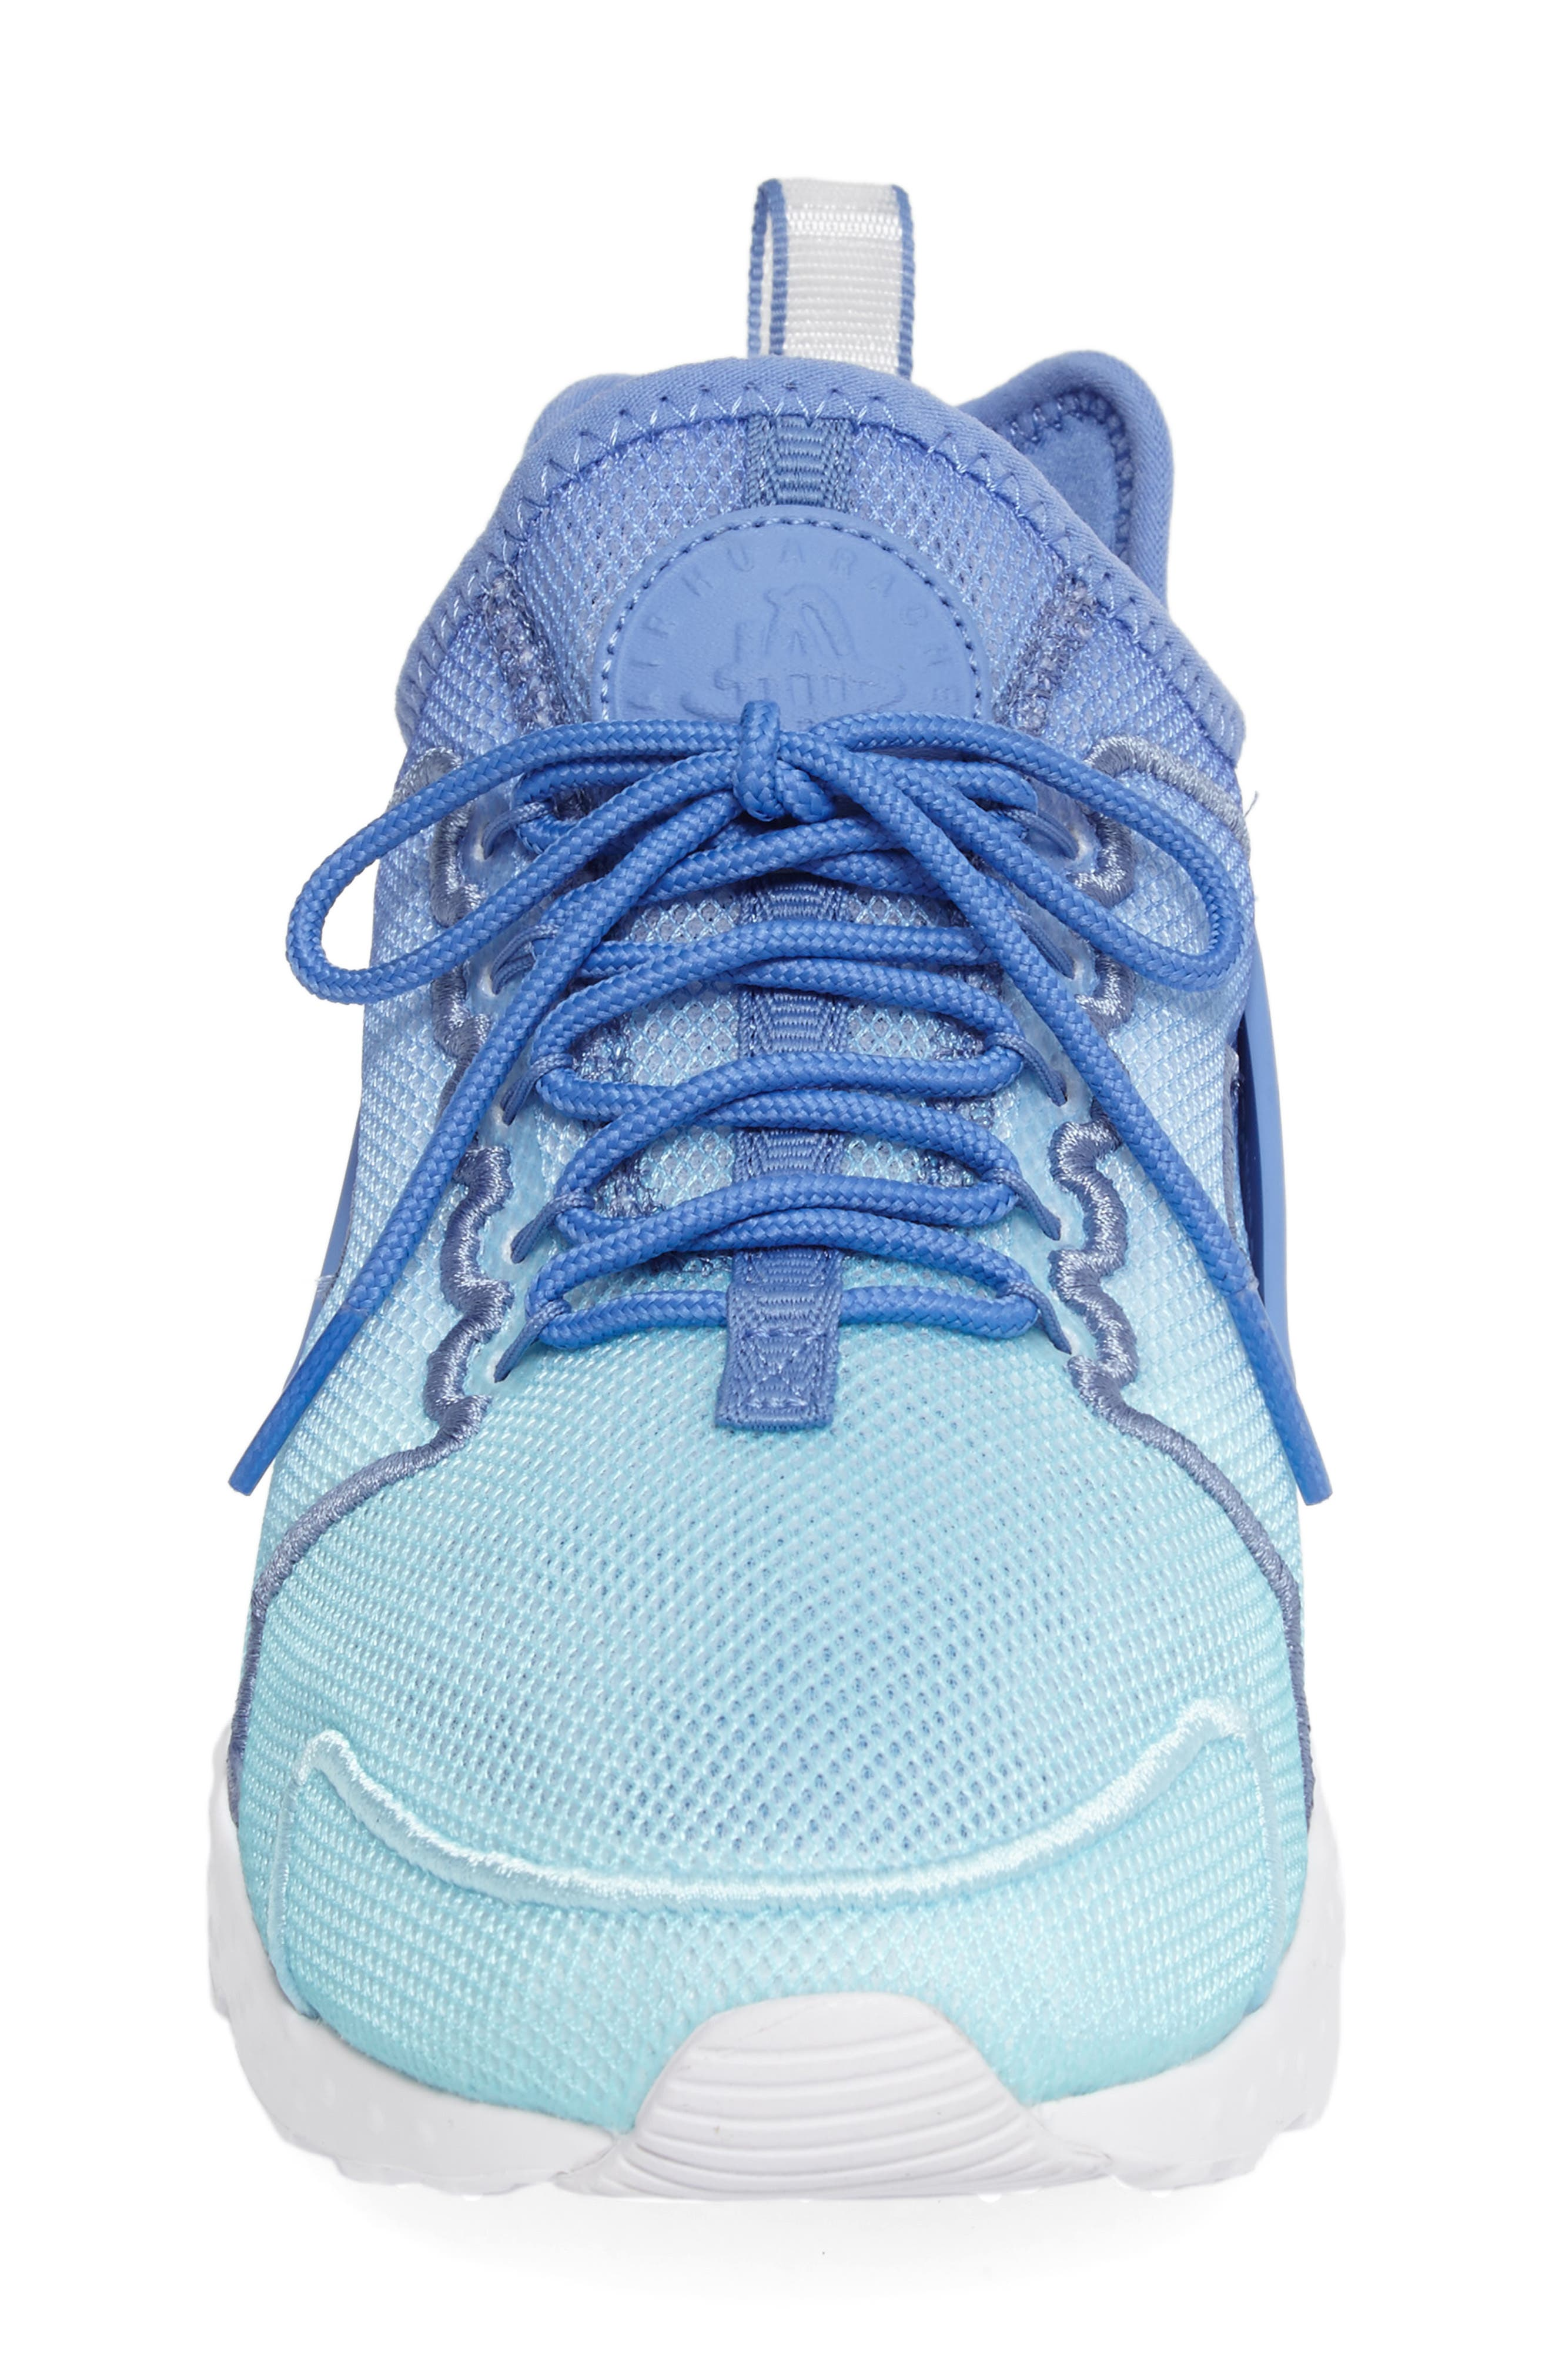 Alternate Image 4  - Nike 'Air Huarache Run Ultra Mesh' Sneaker (Women)